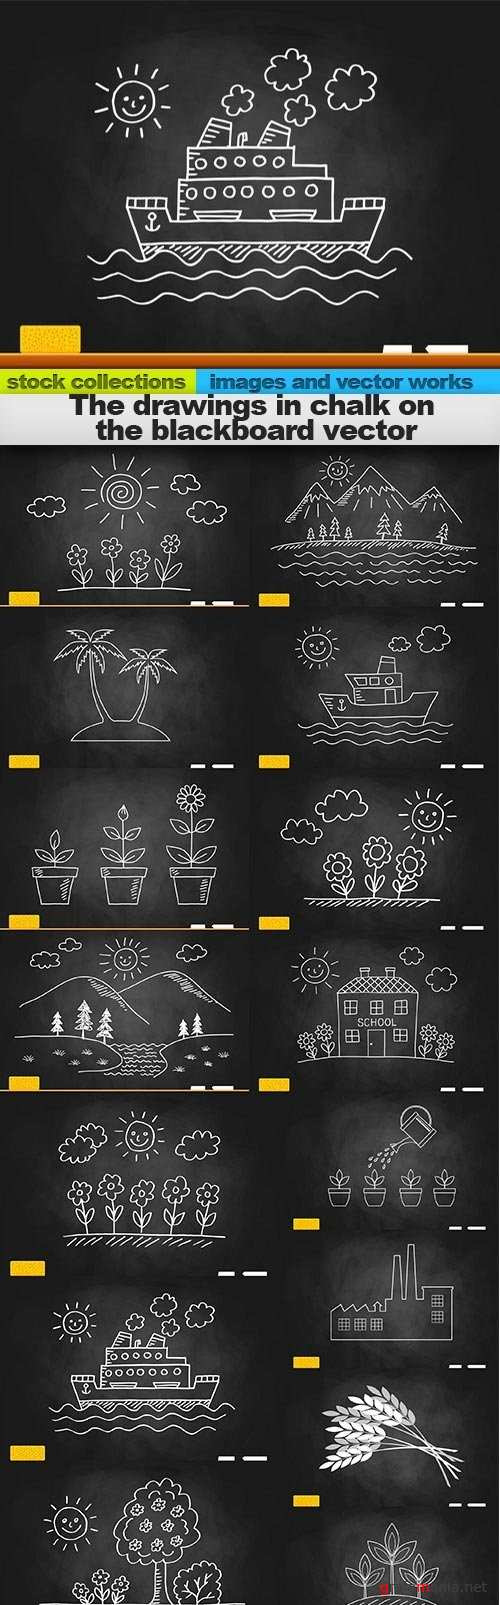 The drawings in chalk on the blackboard vector, 15 x EPS